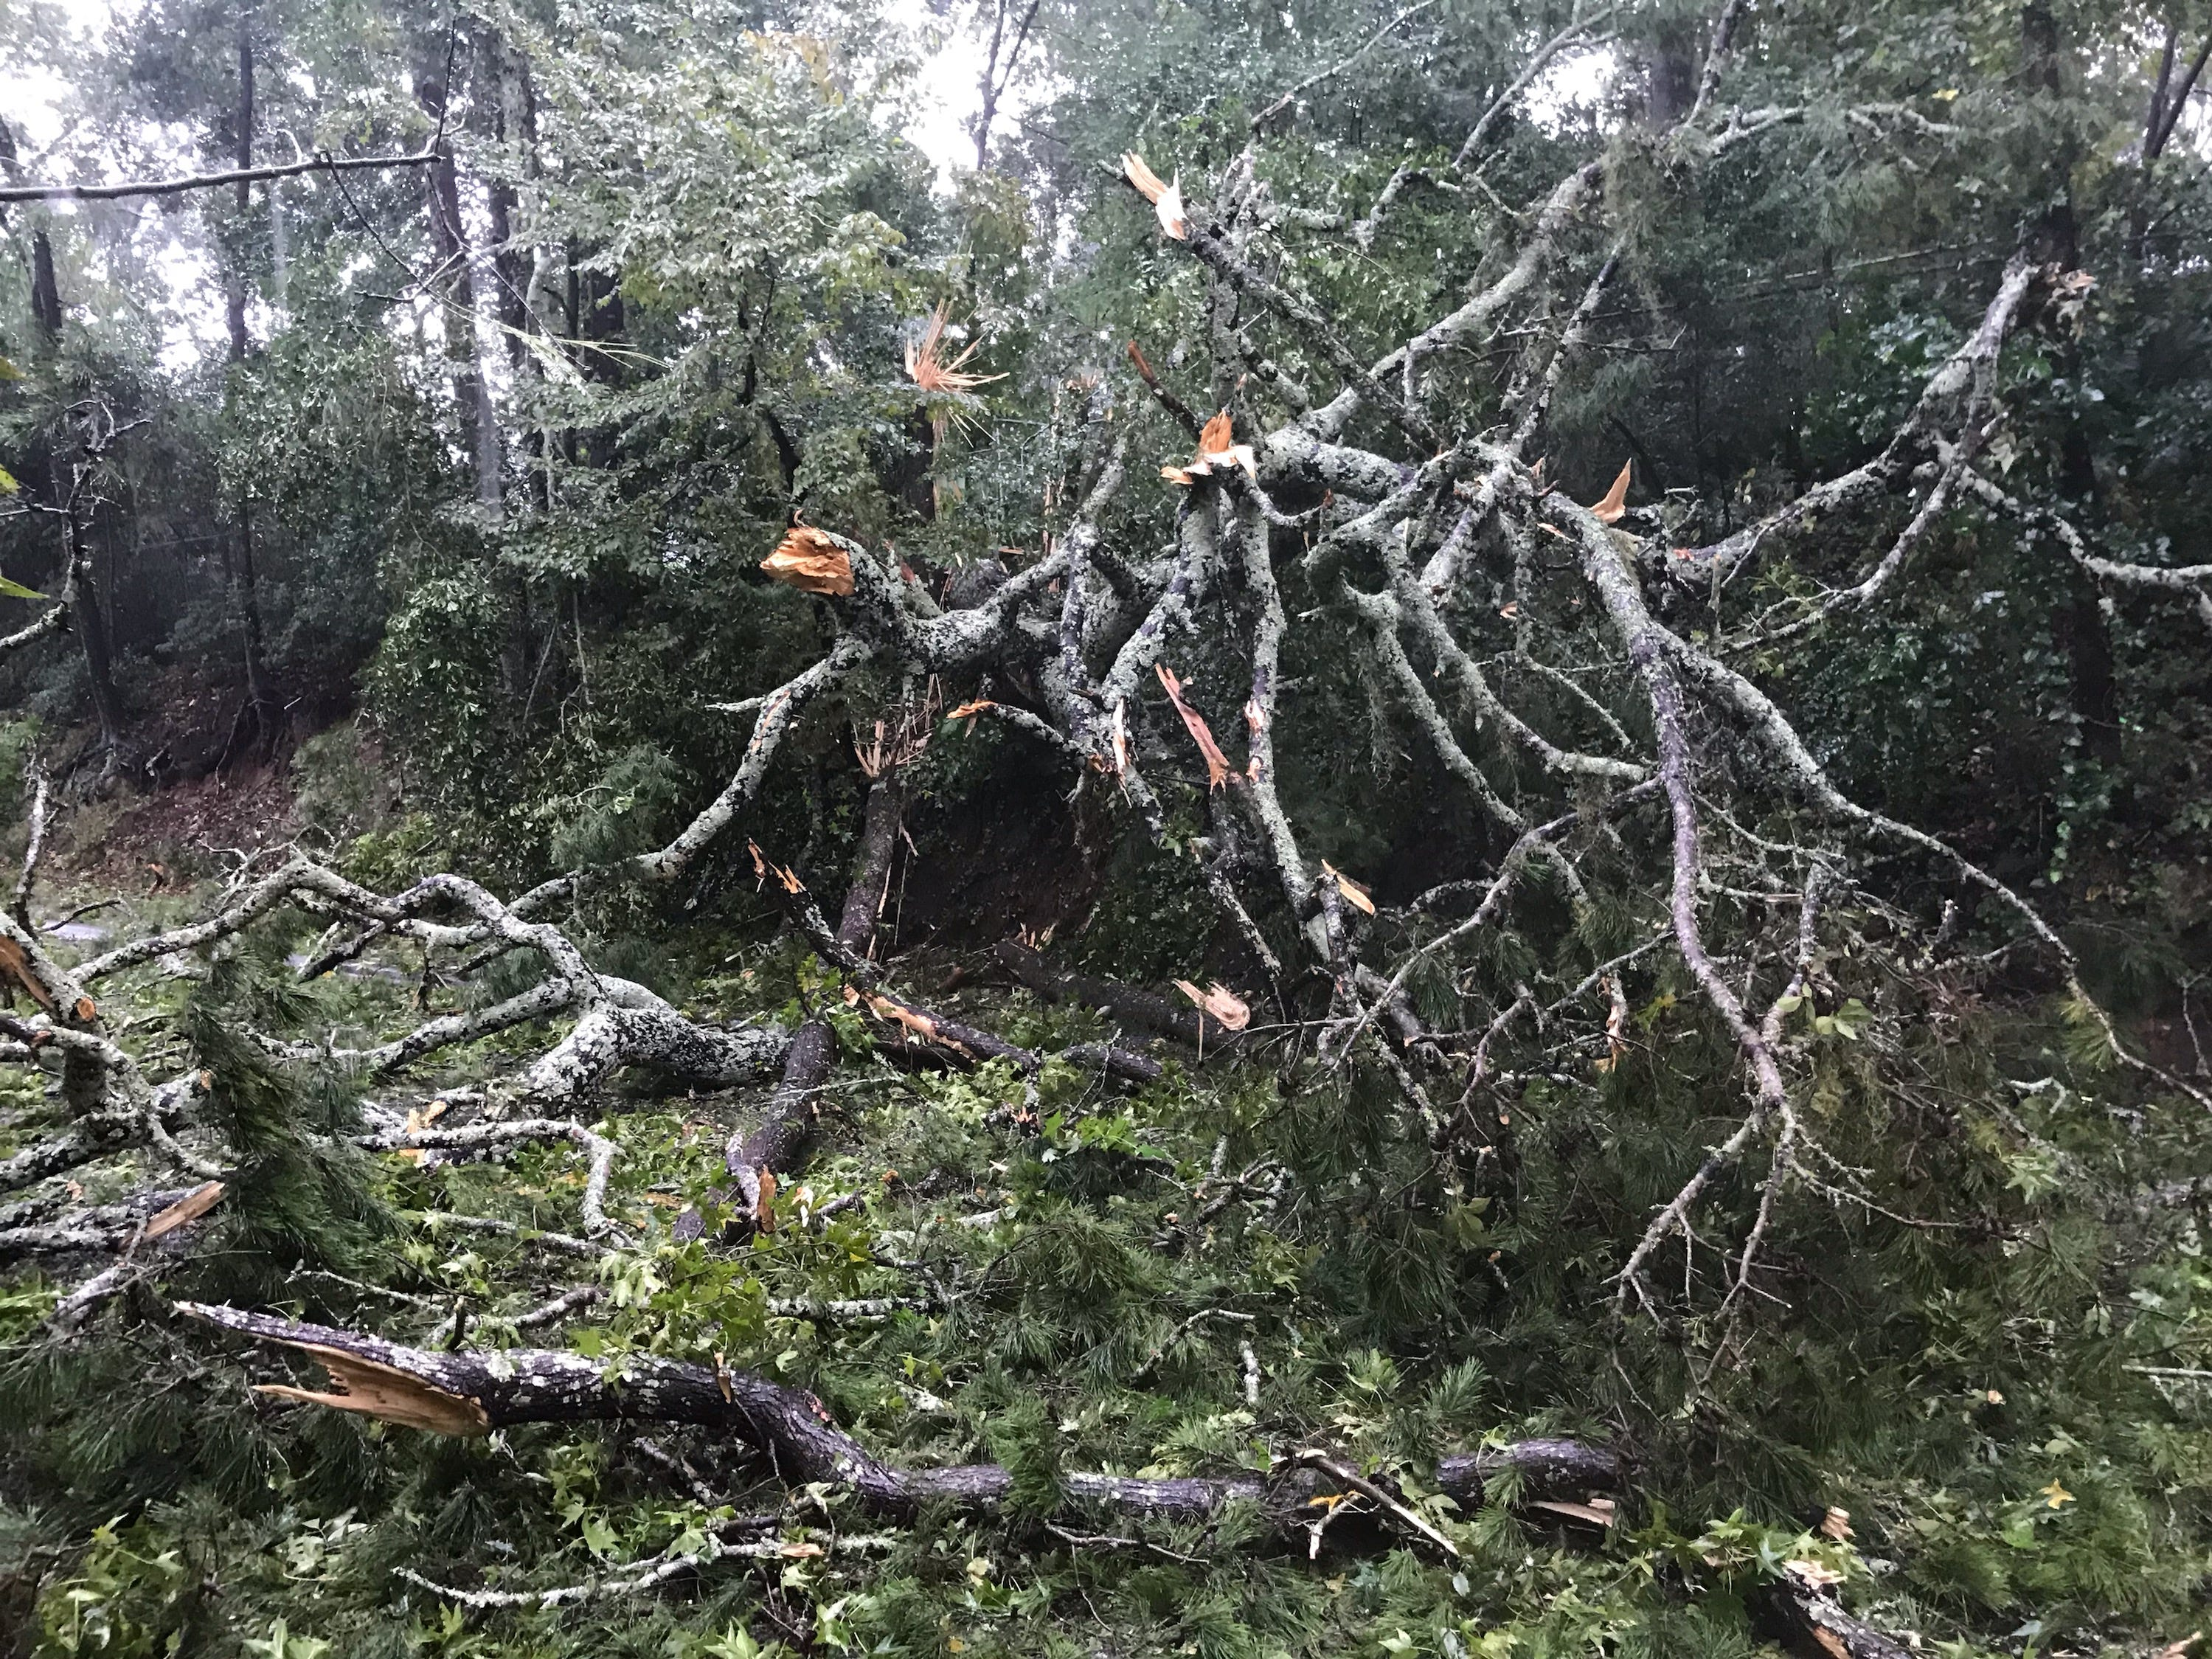 In downtown Tallahassee, branches are crashing down as Tallahassee begins to experiences some of the worst from Hurricane Michael on Wednesday, Oct. 10, 2018.